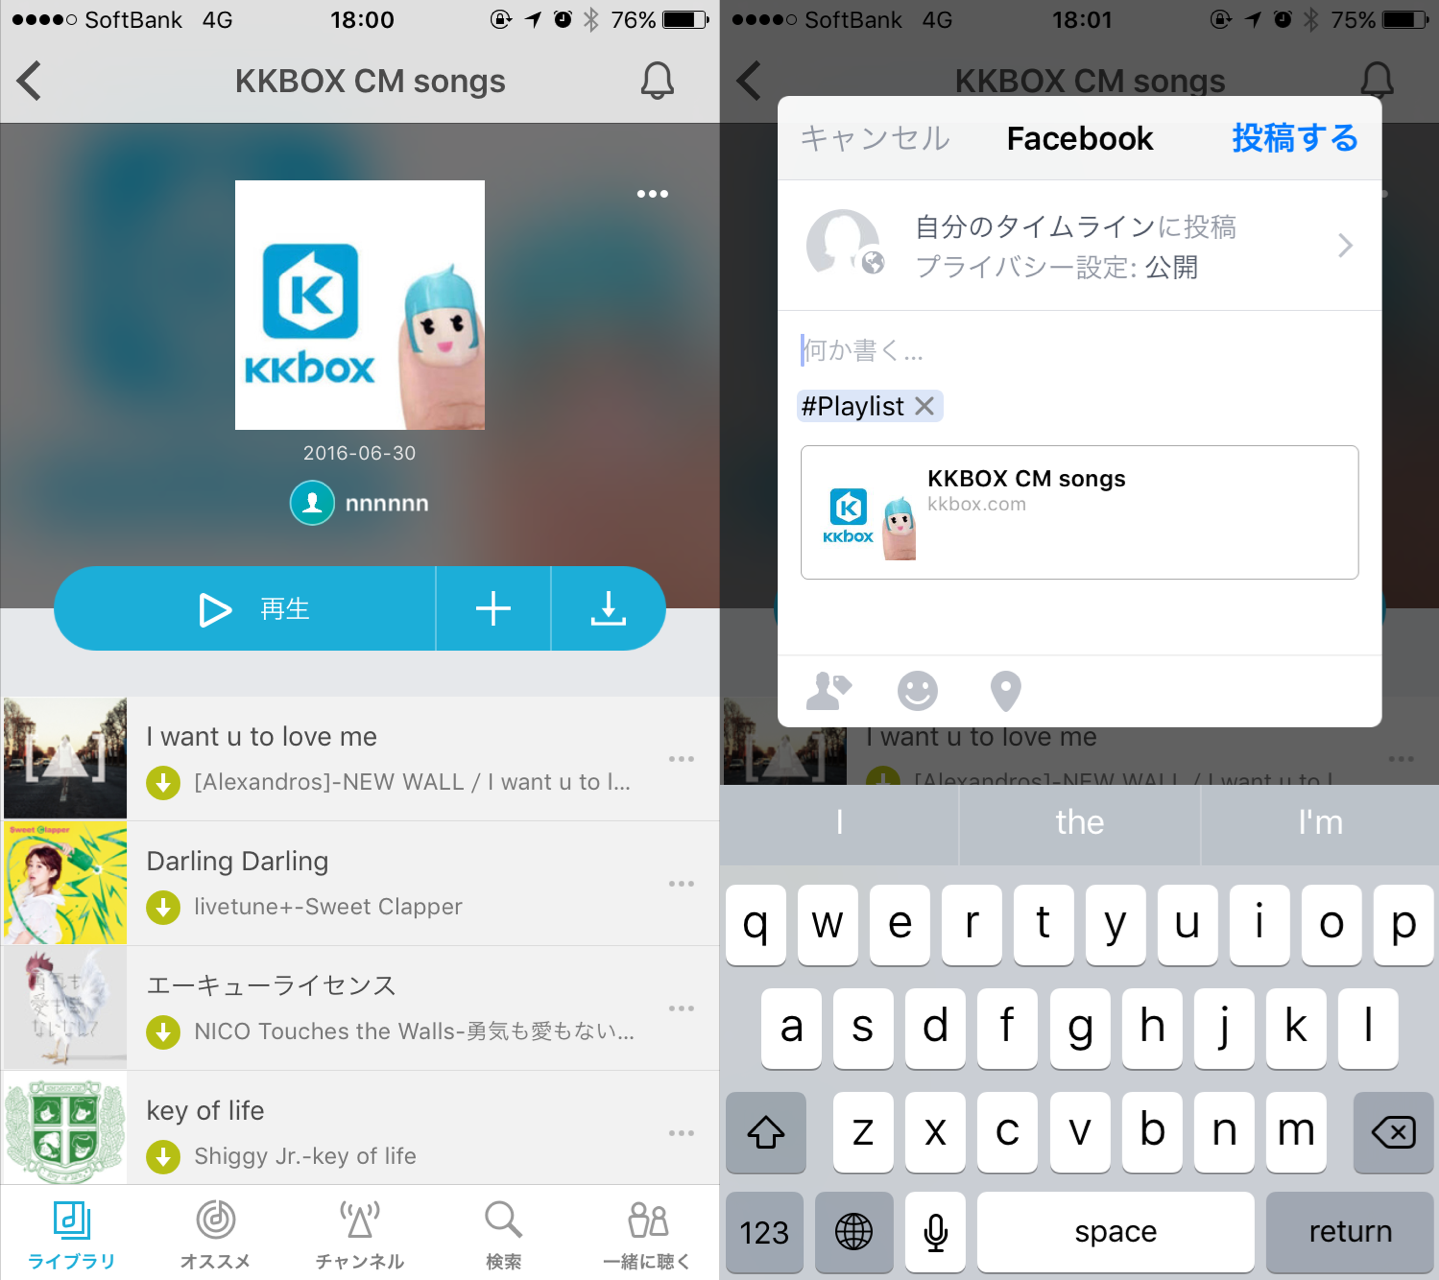 kkbox_Facebook_Musicstories01